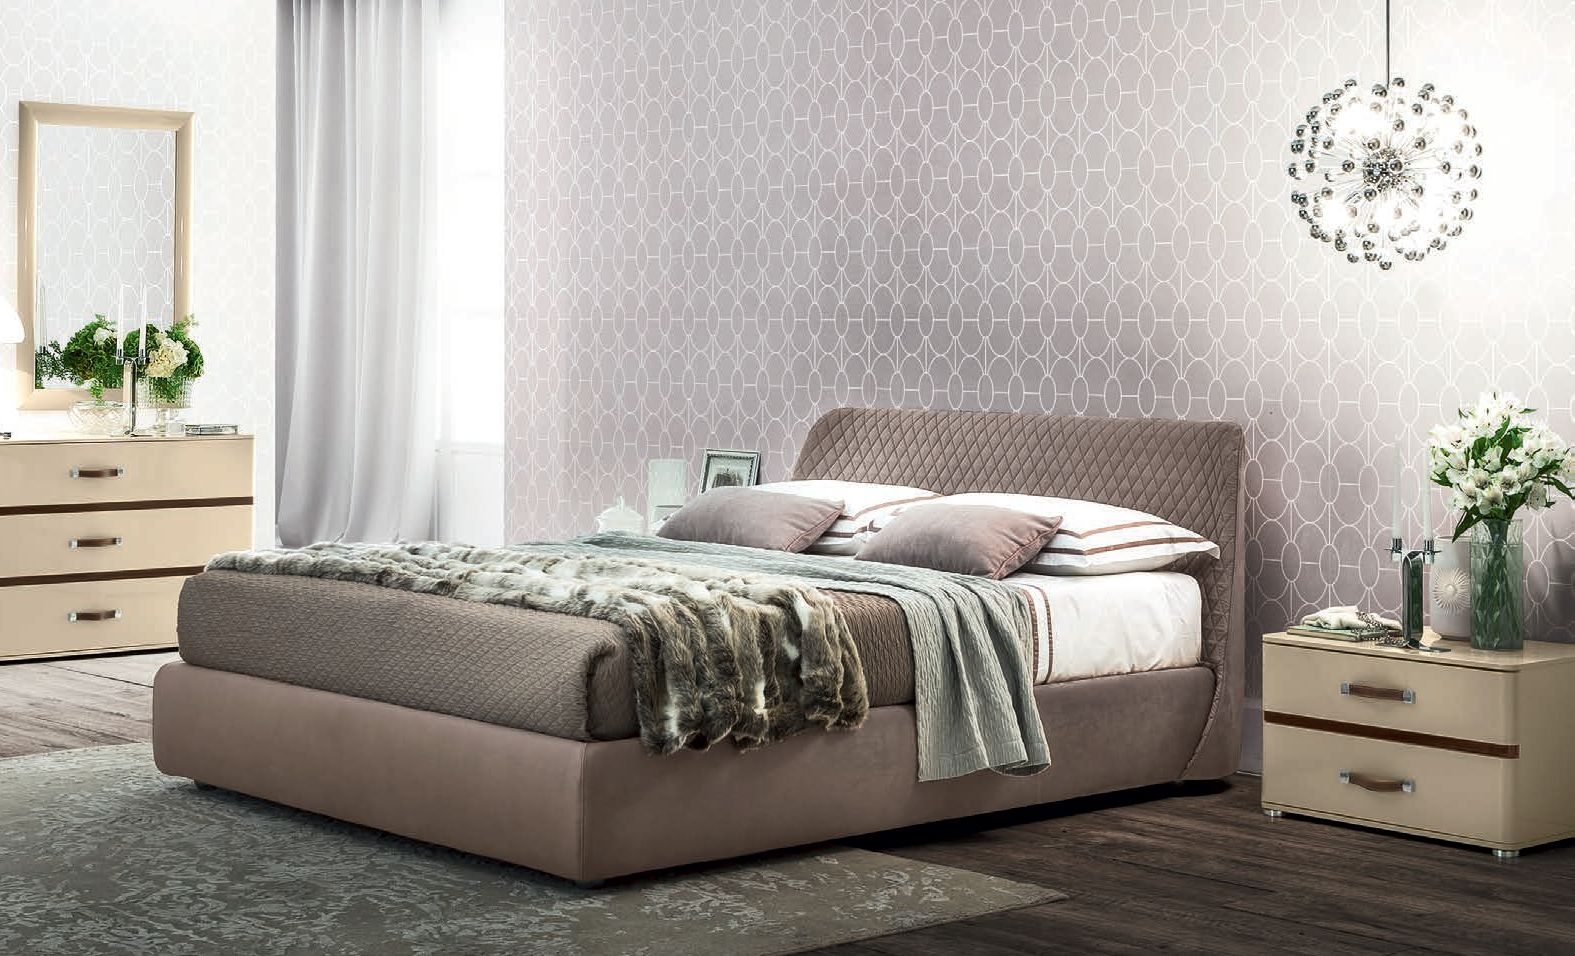 Camel Altea Kleo Italian Bed